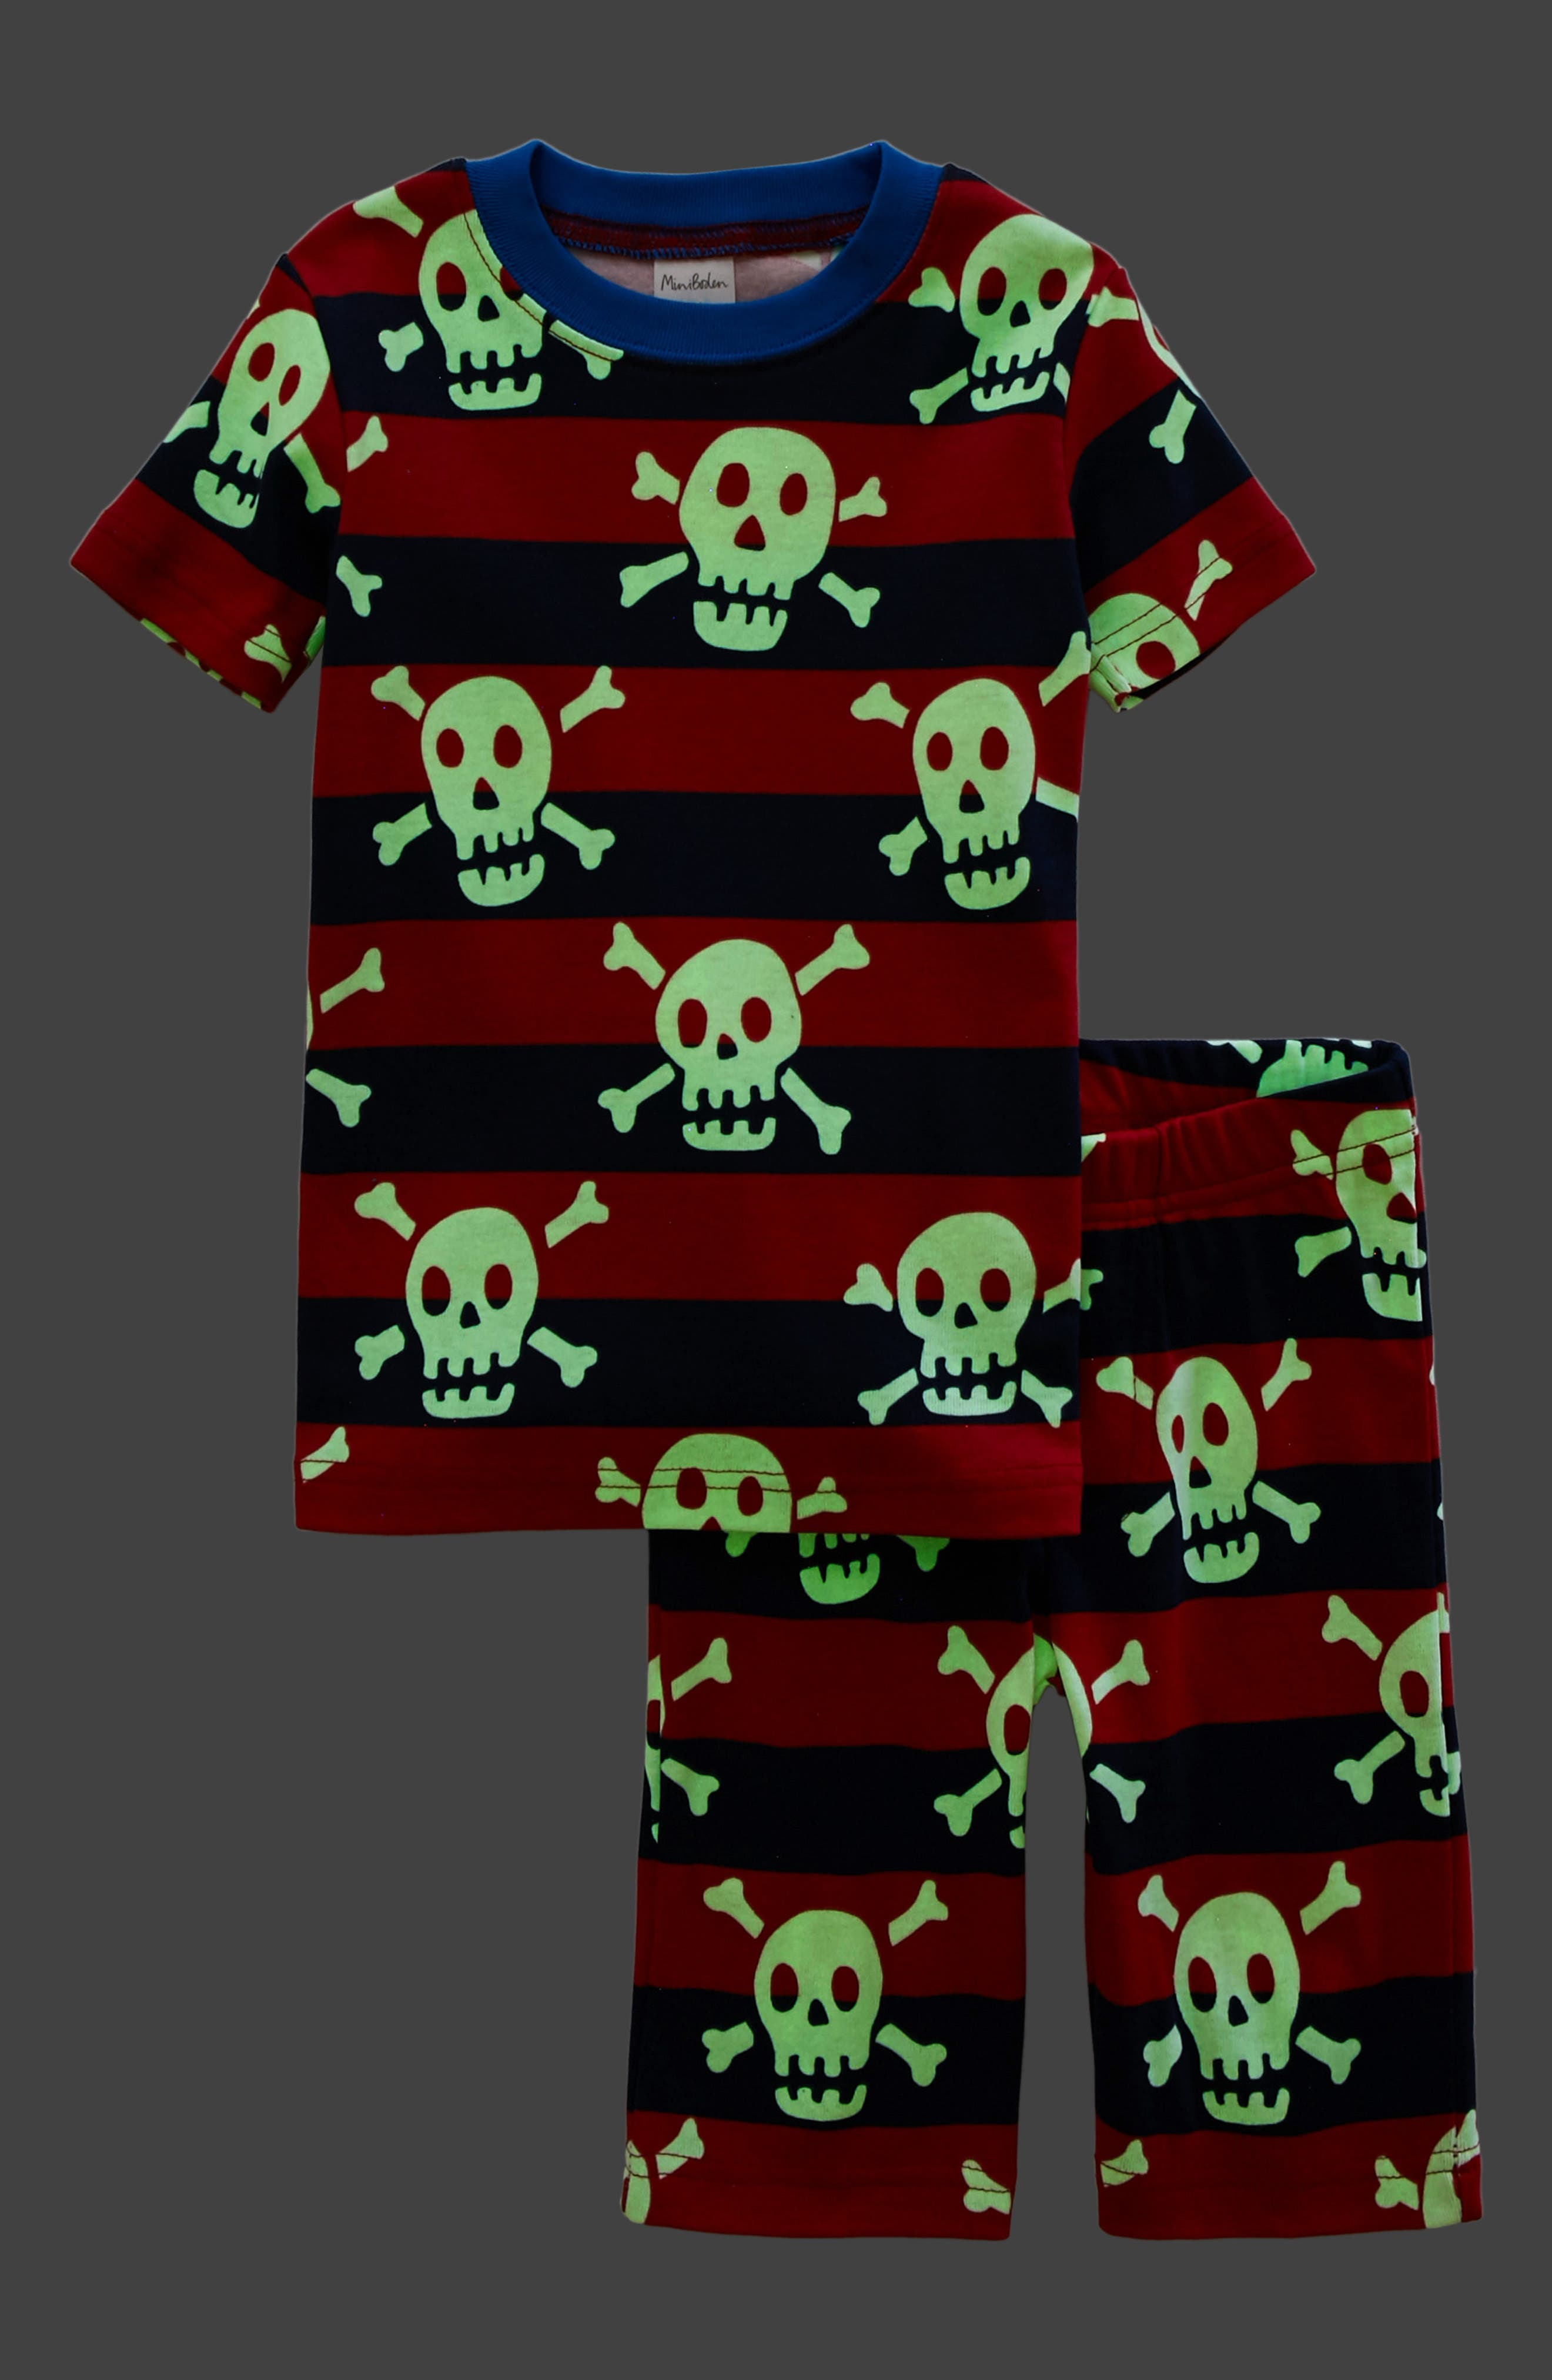 Glow in the Dark Fitted Two-Piece Pajamas,                             Alternate thumbnail 2, color,                             Salsa Red/School Navy